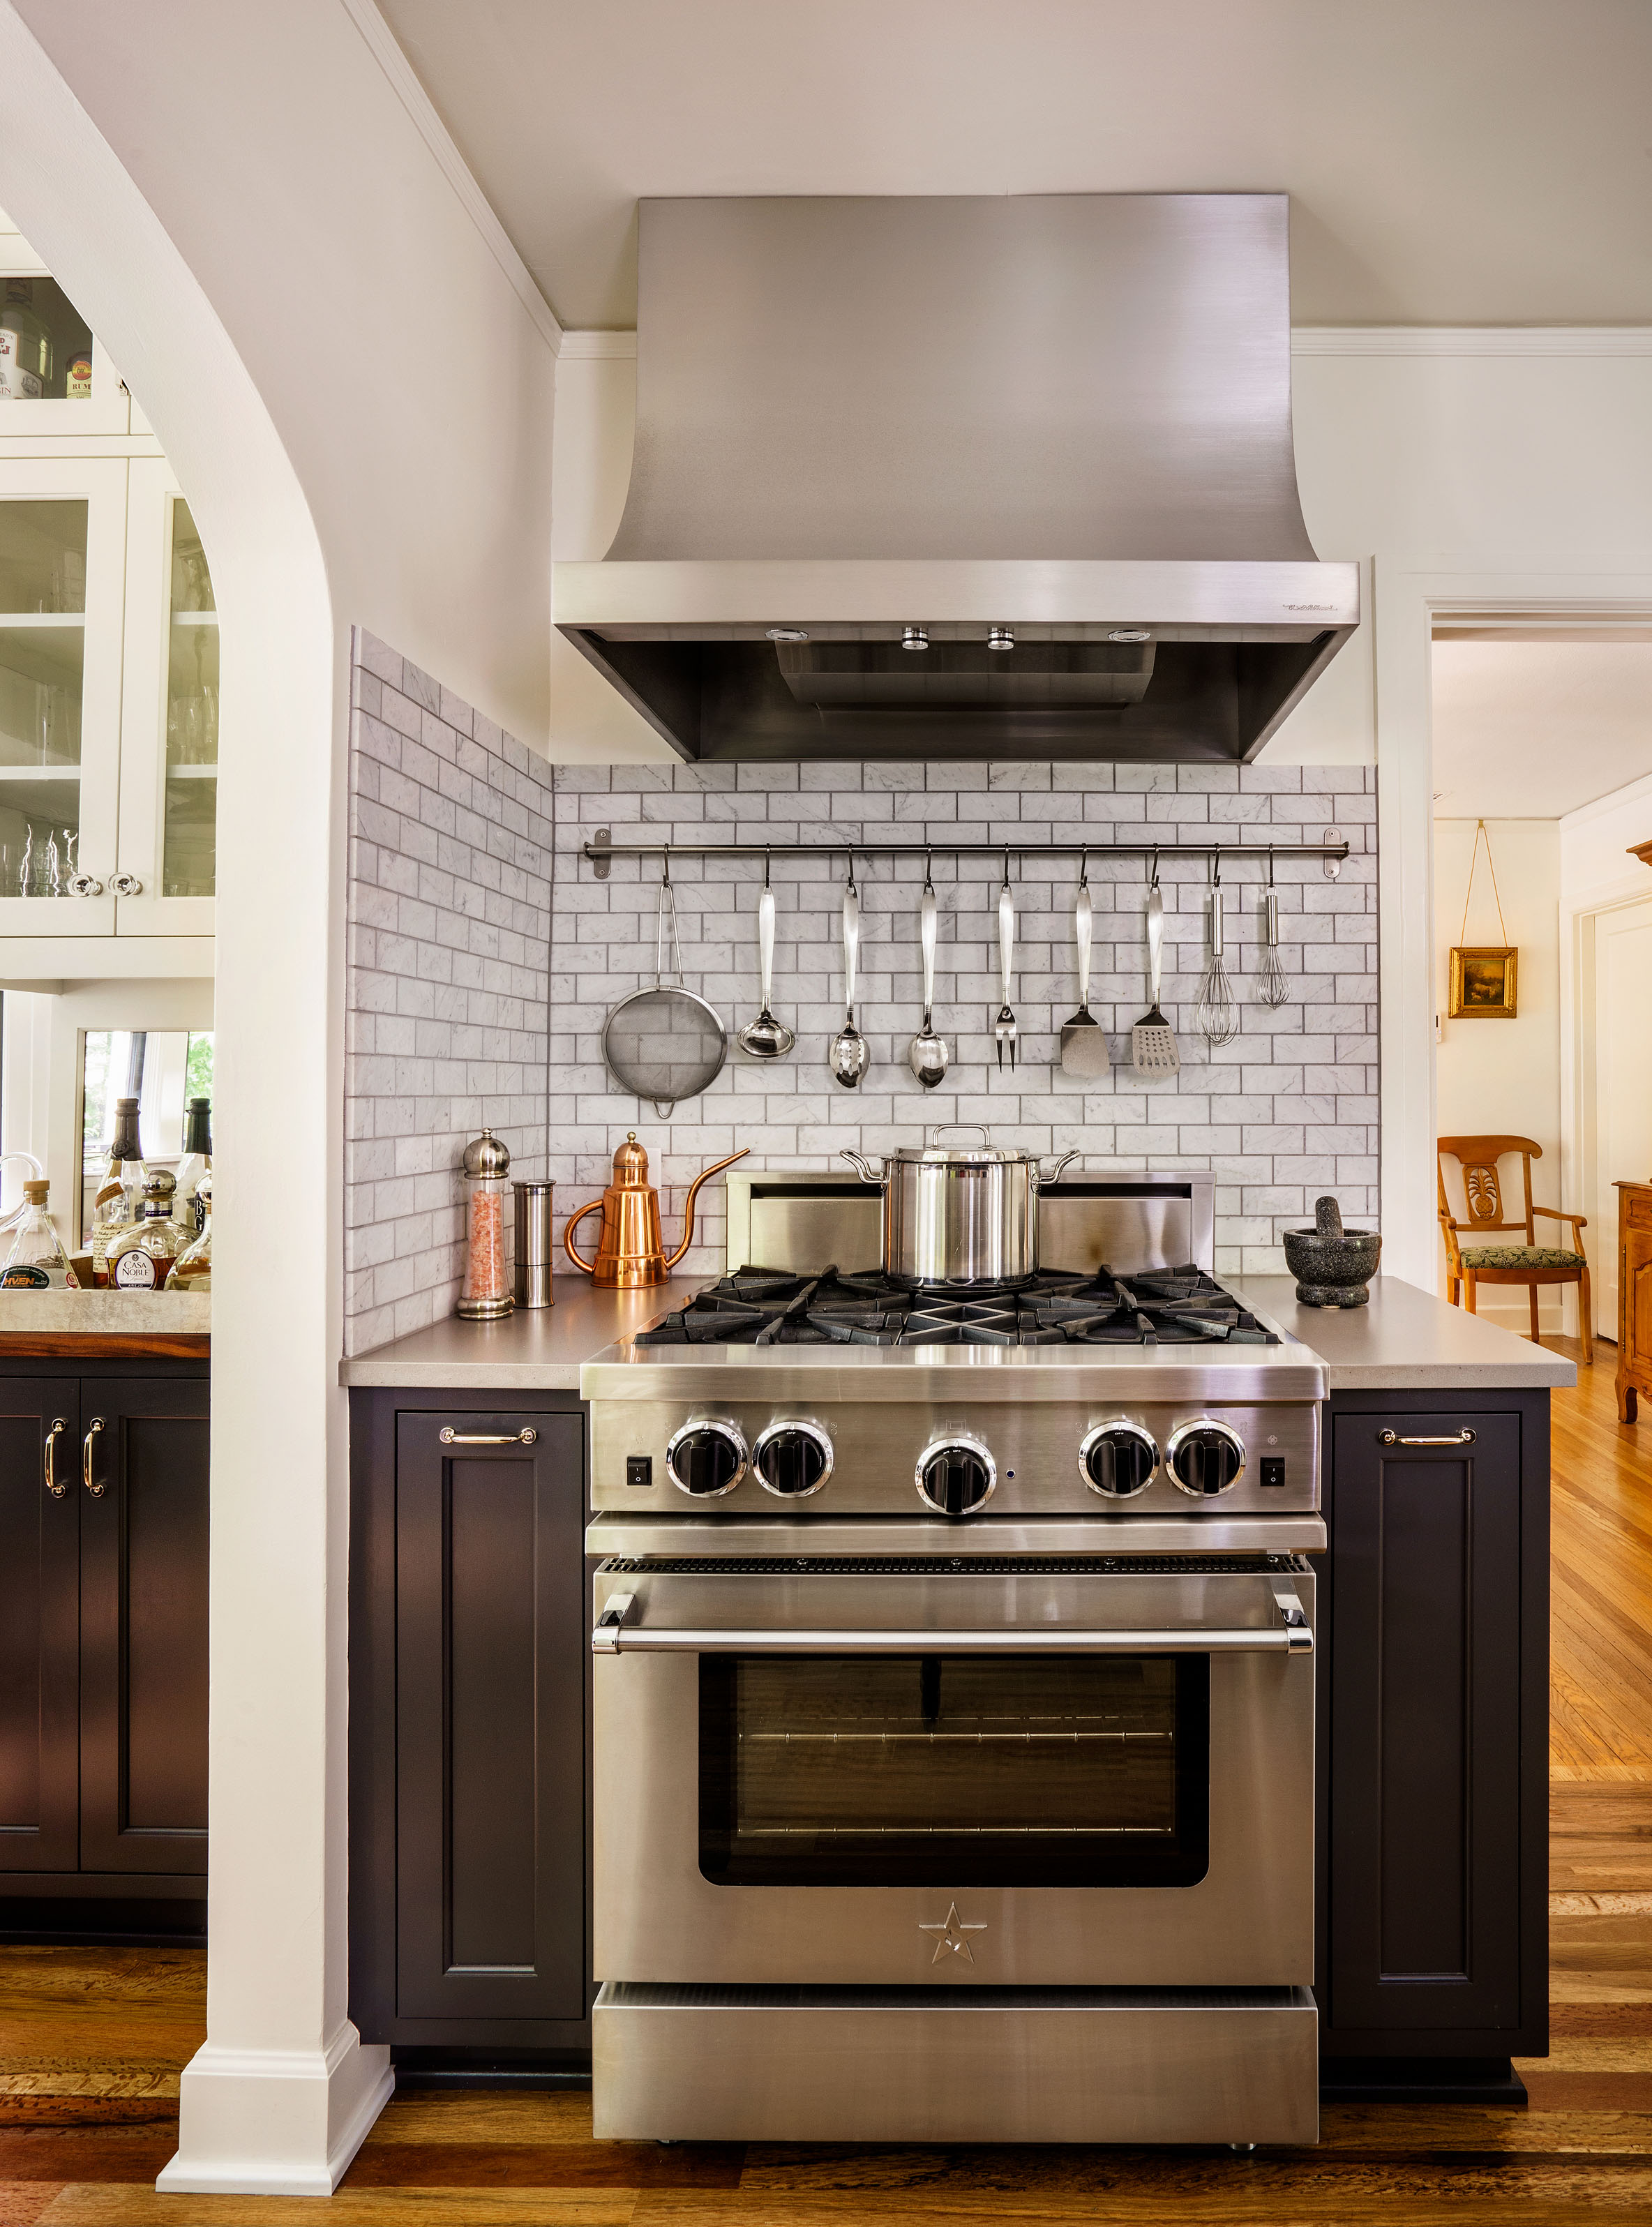 Stainless steel adds to chef's kitchen style.